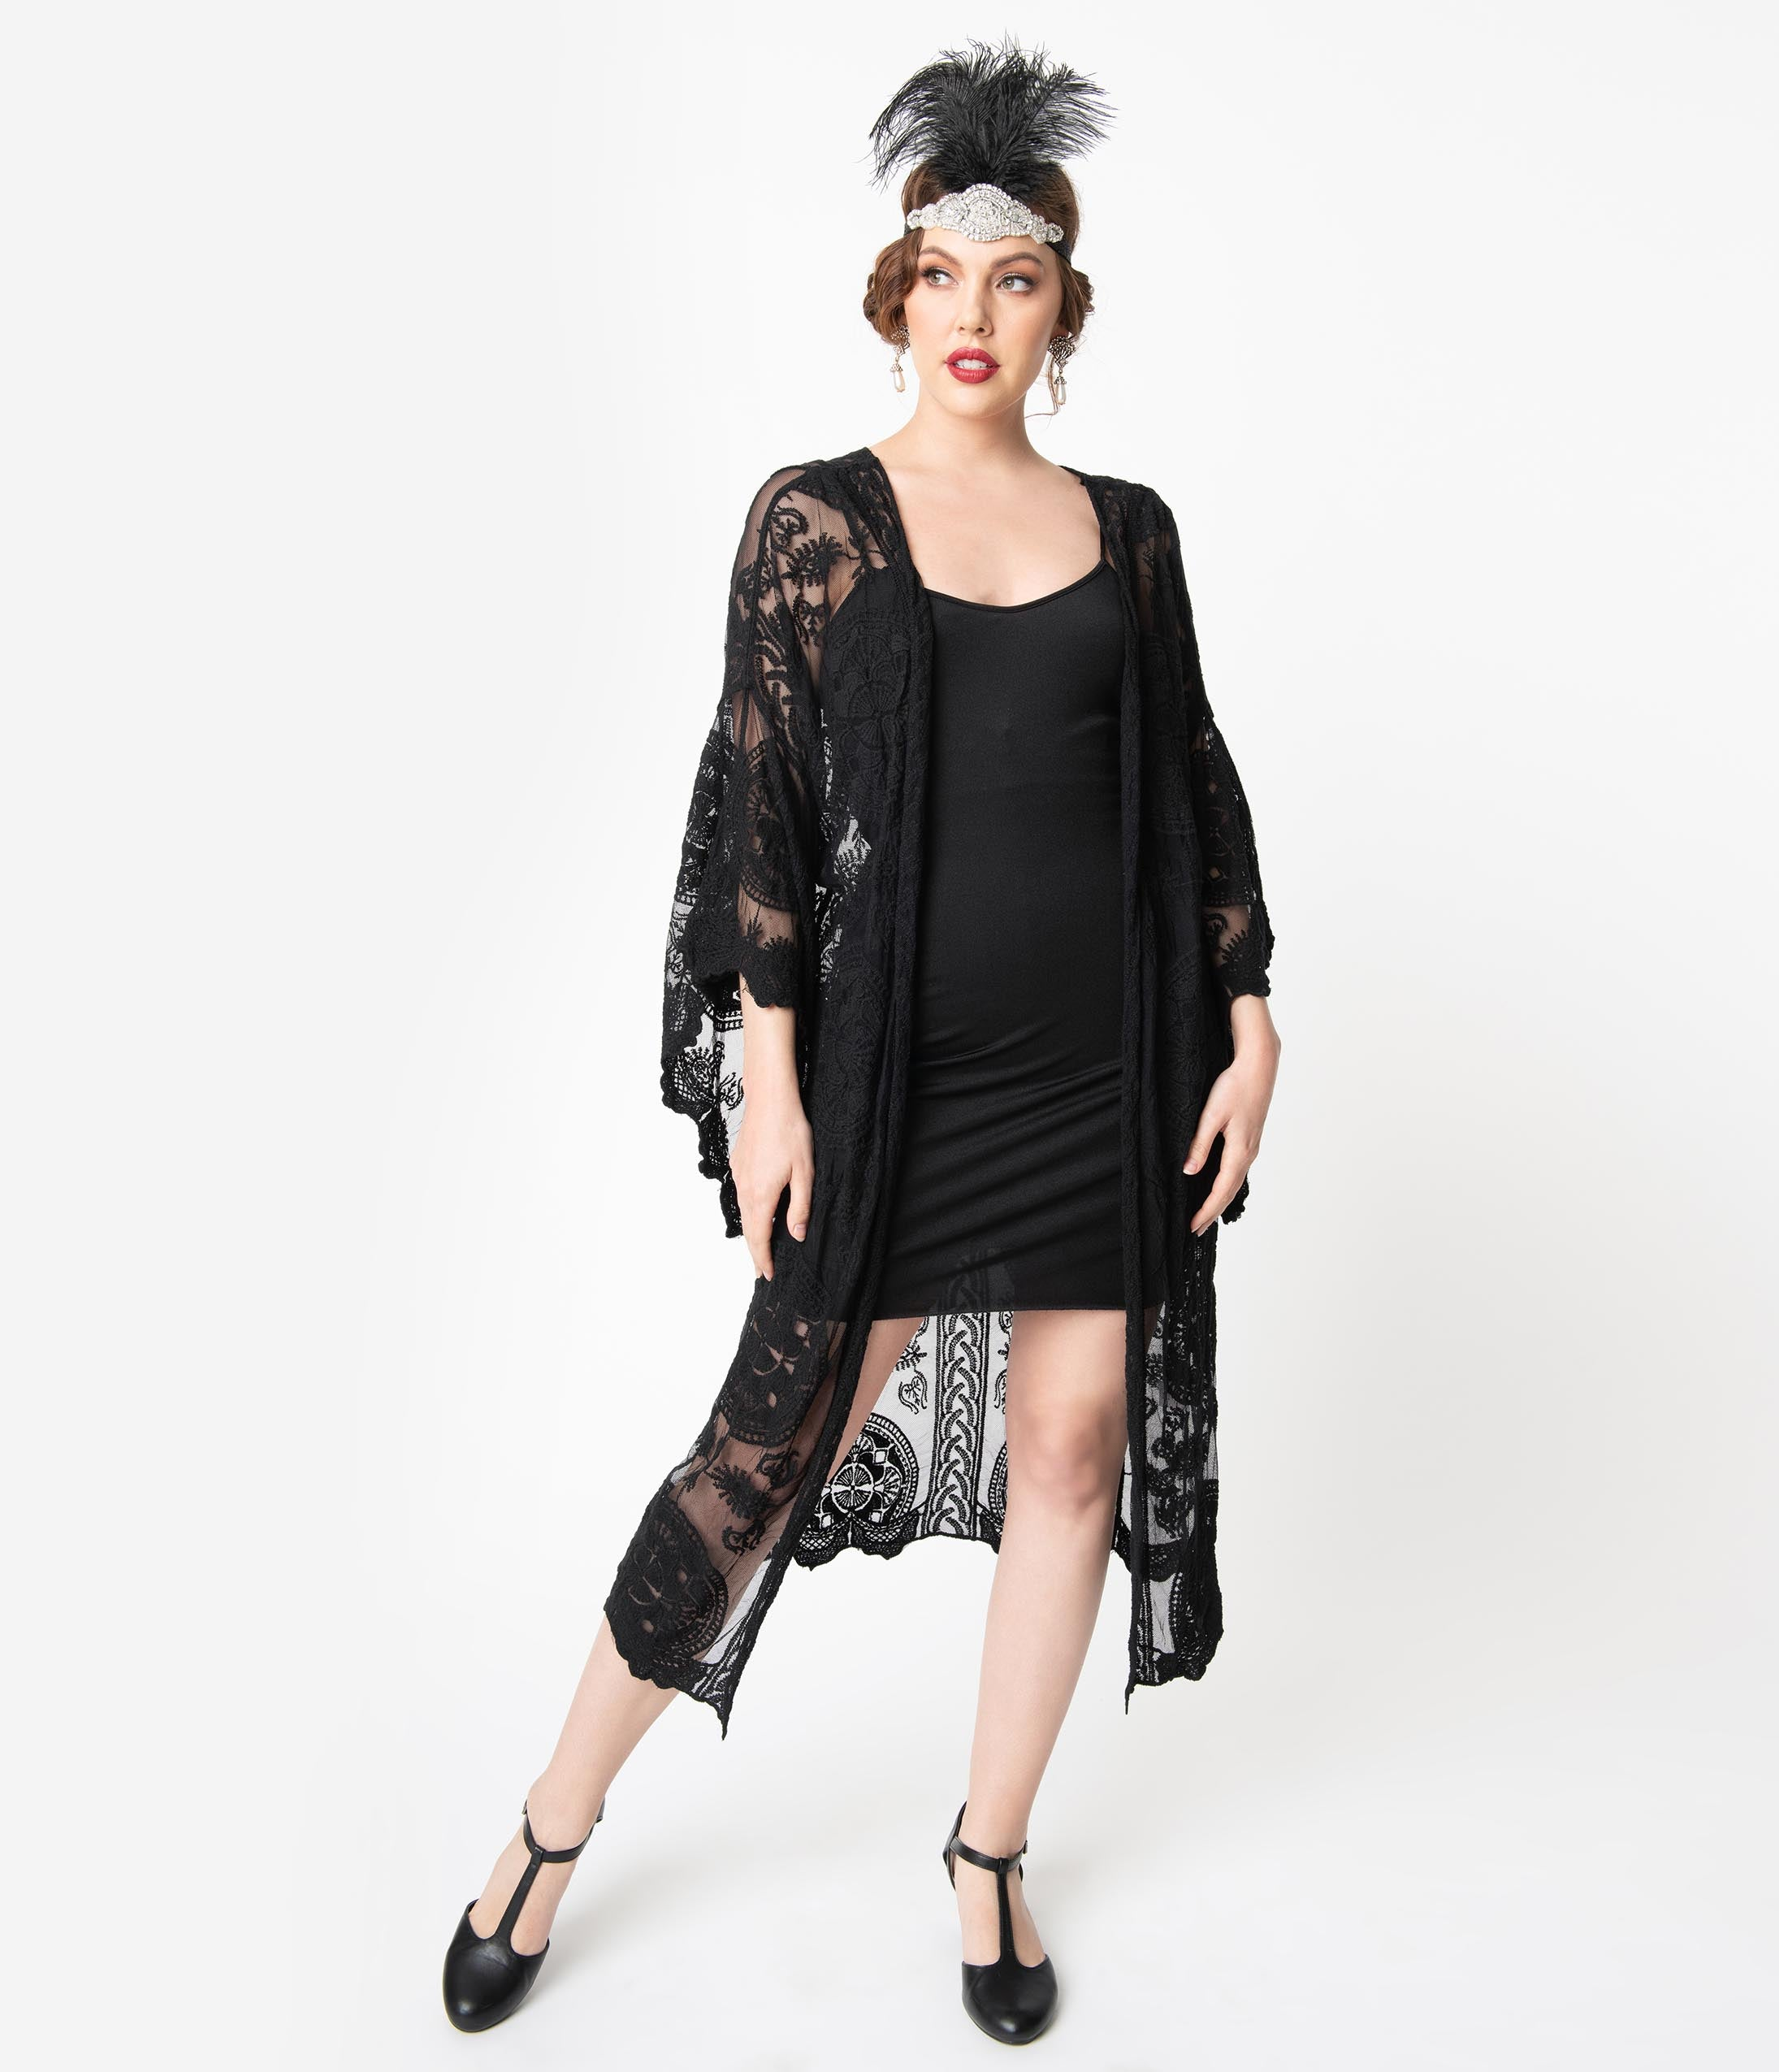 Vintage Coats & Jackets | Retro Coats and Jackets 1920S Style Black Embroidered Lace Mesh Long Kimono $48.00 AT vintagedancer.com